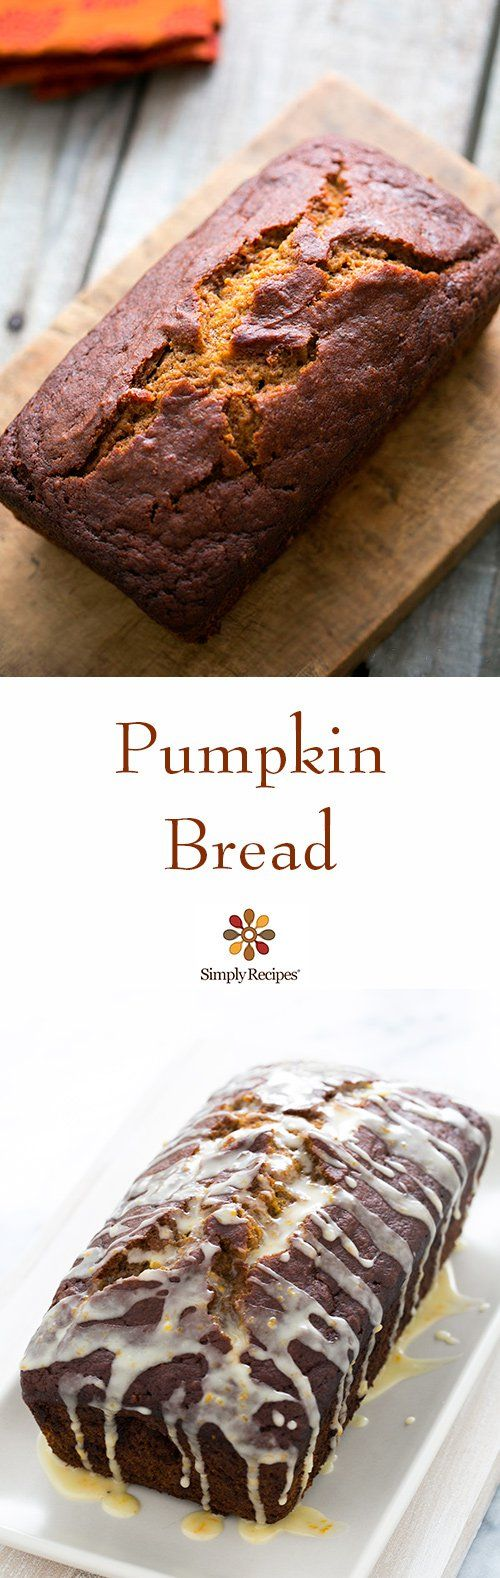 69 best images about bread sweet savory on pinterest for What to make with leftover applesauce